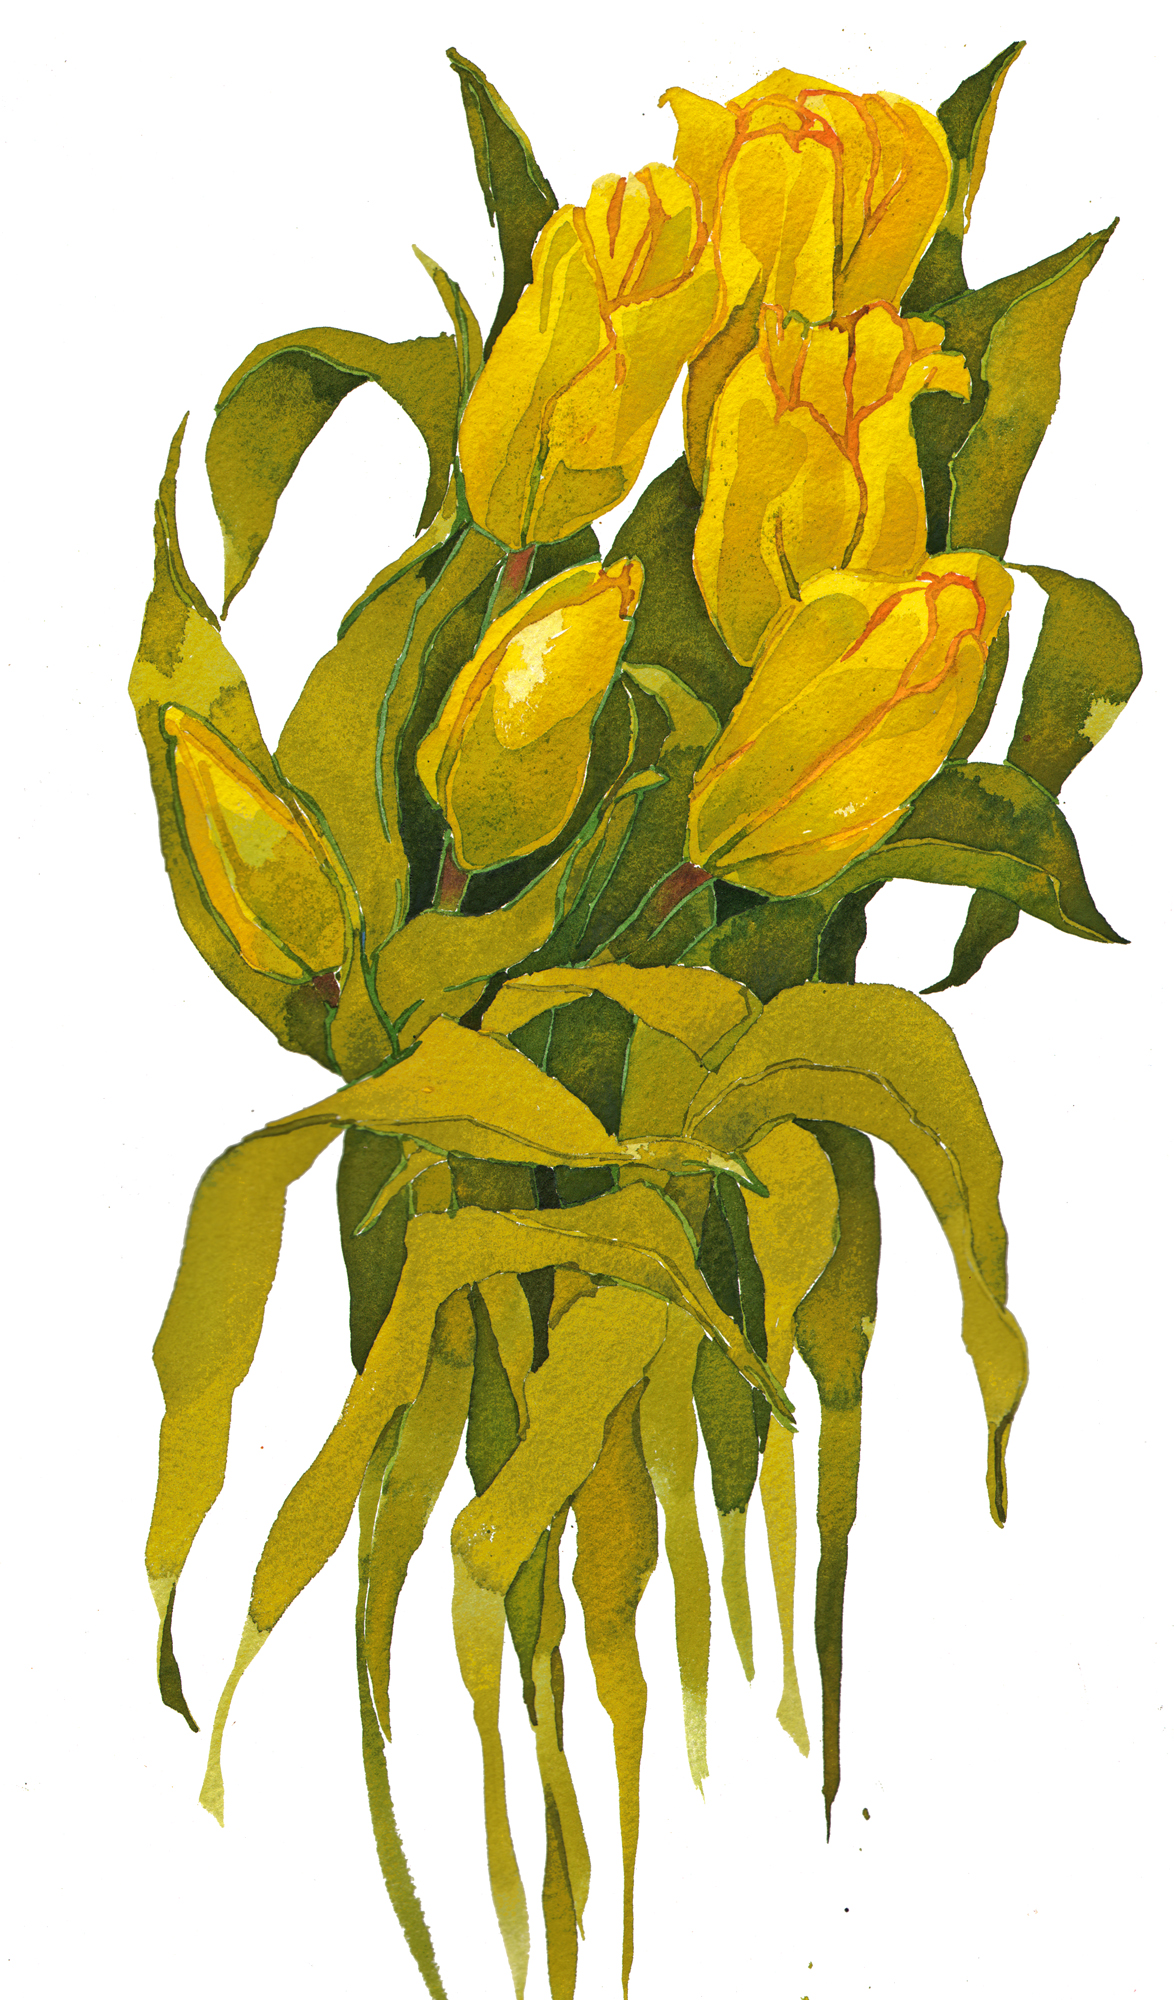 Yellow Tulips, New image